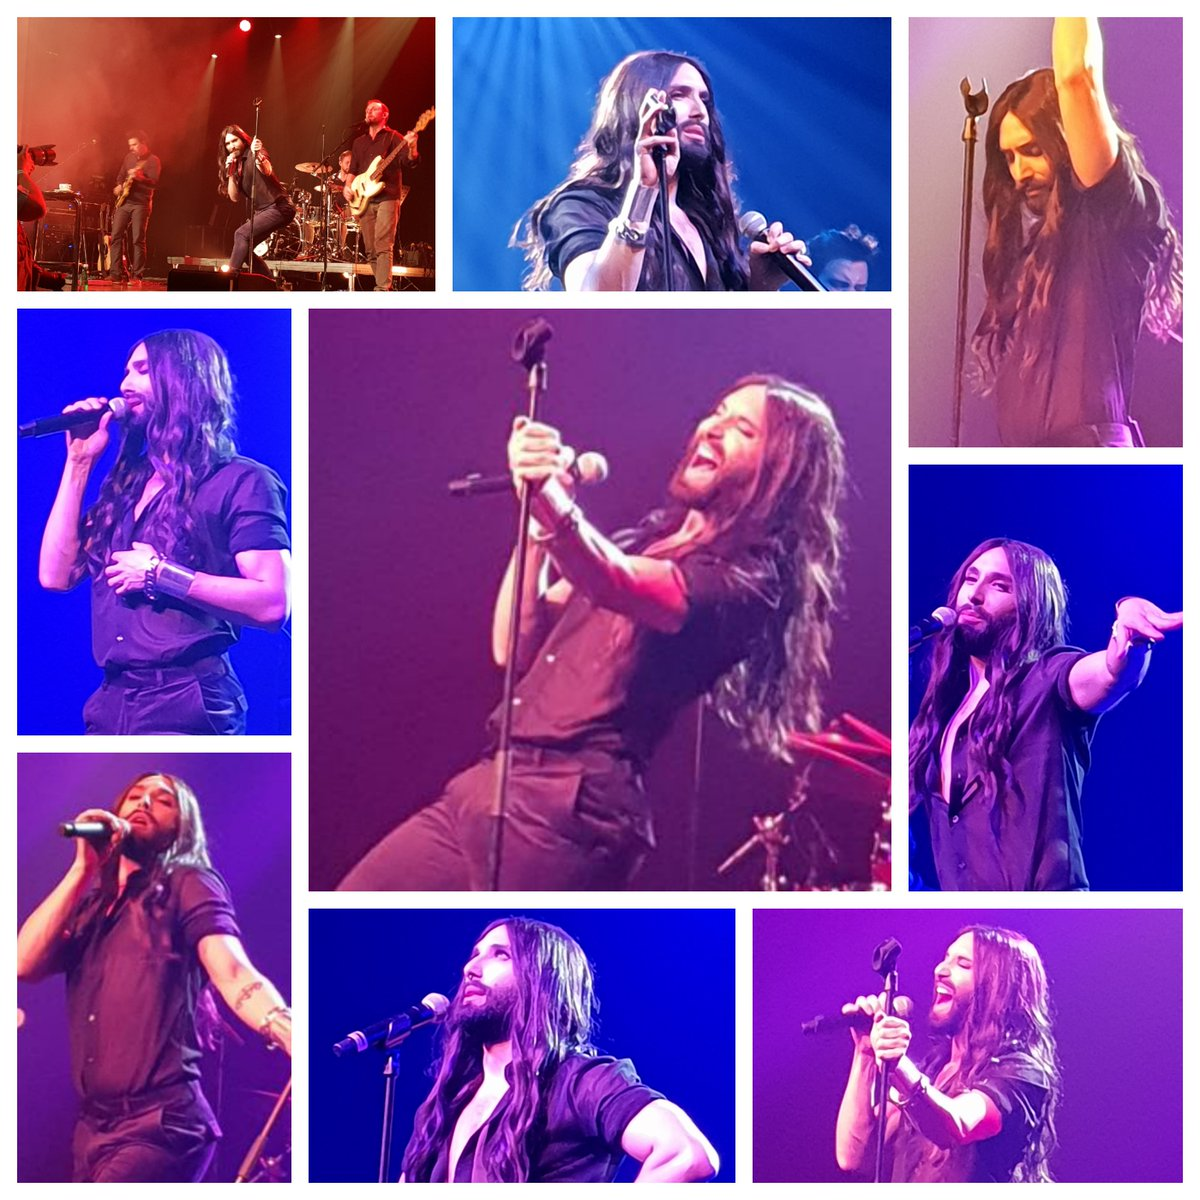 Some impressions of #ConchitaLIVE #Spielberg #Austria 14.04.2018  https://www. youtube.com/watch?v=gwI2RL gGxvo &nbsp; …  Upcoming events #Conchita #ConchitaWurst  http://www. conchitawurst.com / &nbsp;    Pics: Snowowl<br>http://pic.twitter.com/ejRoOLhDLR